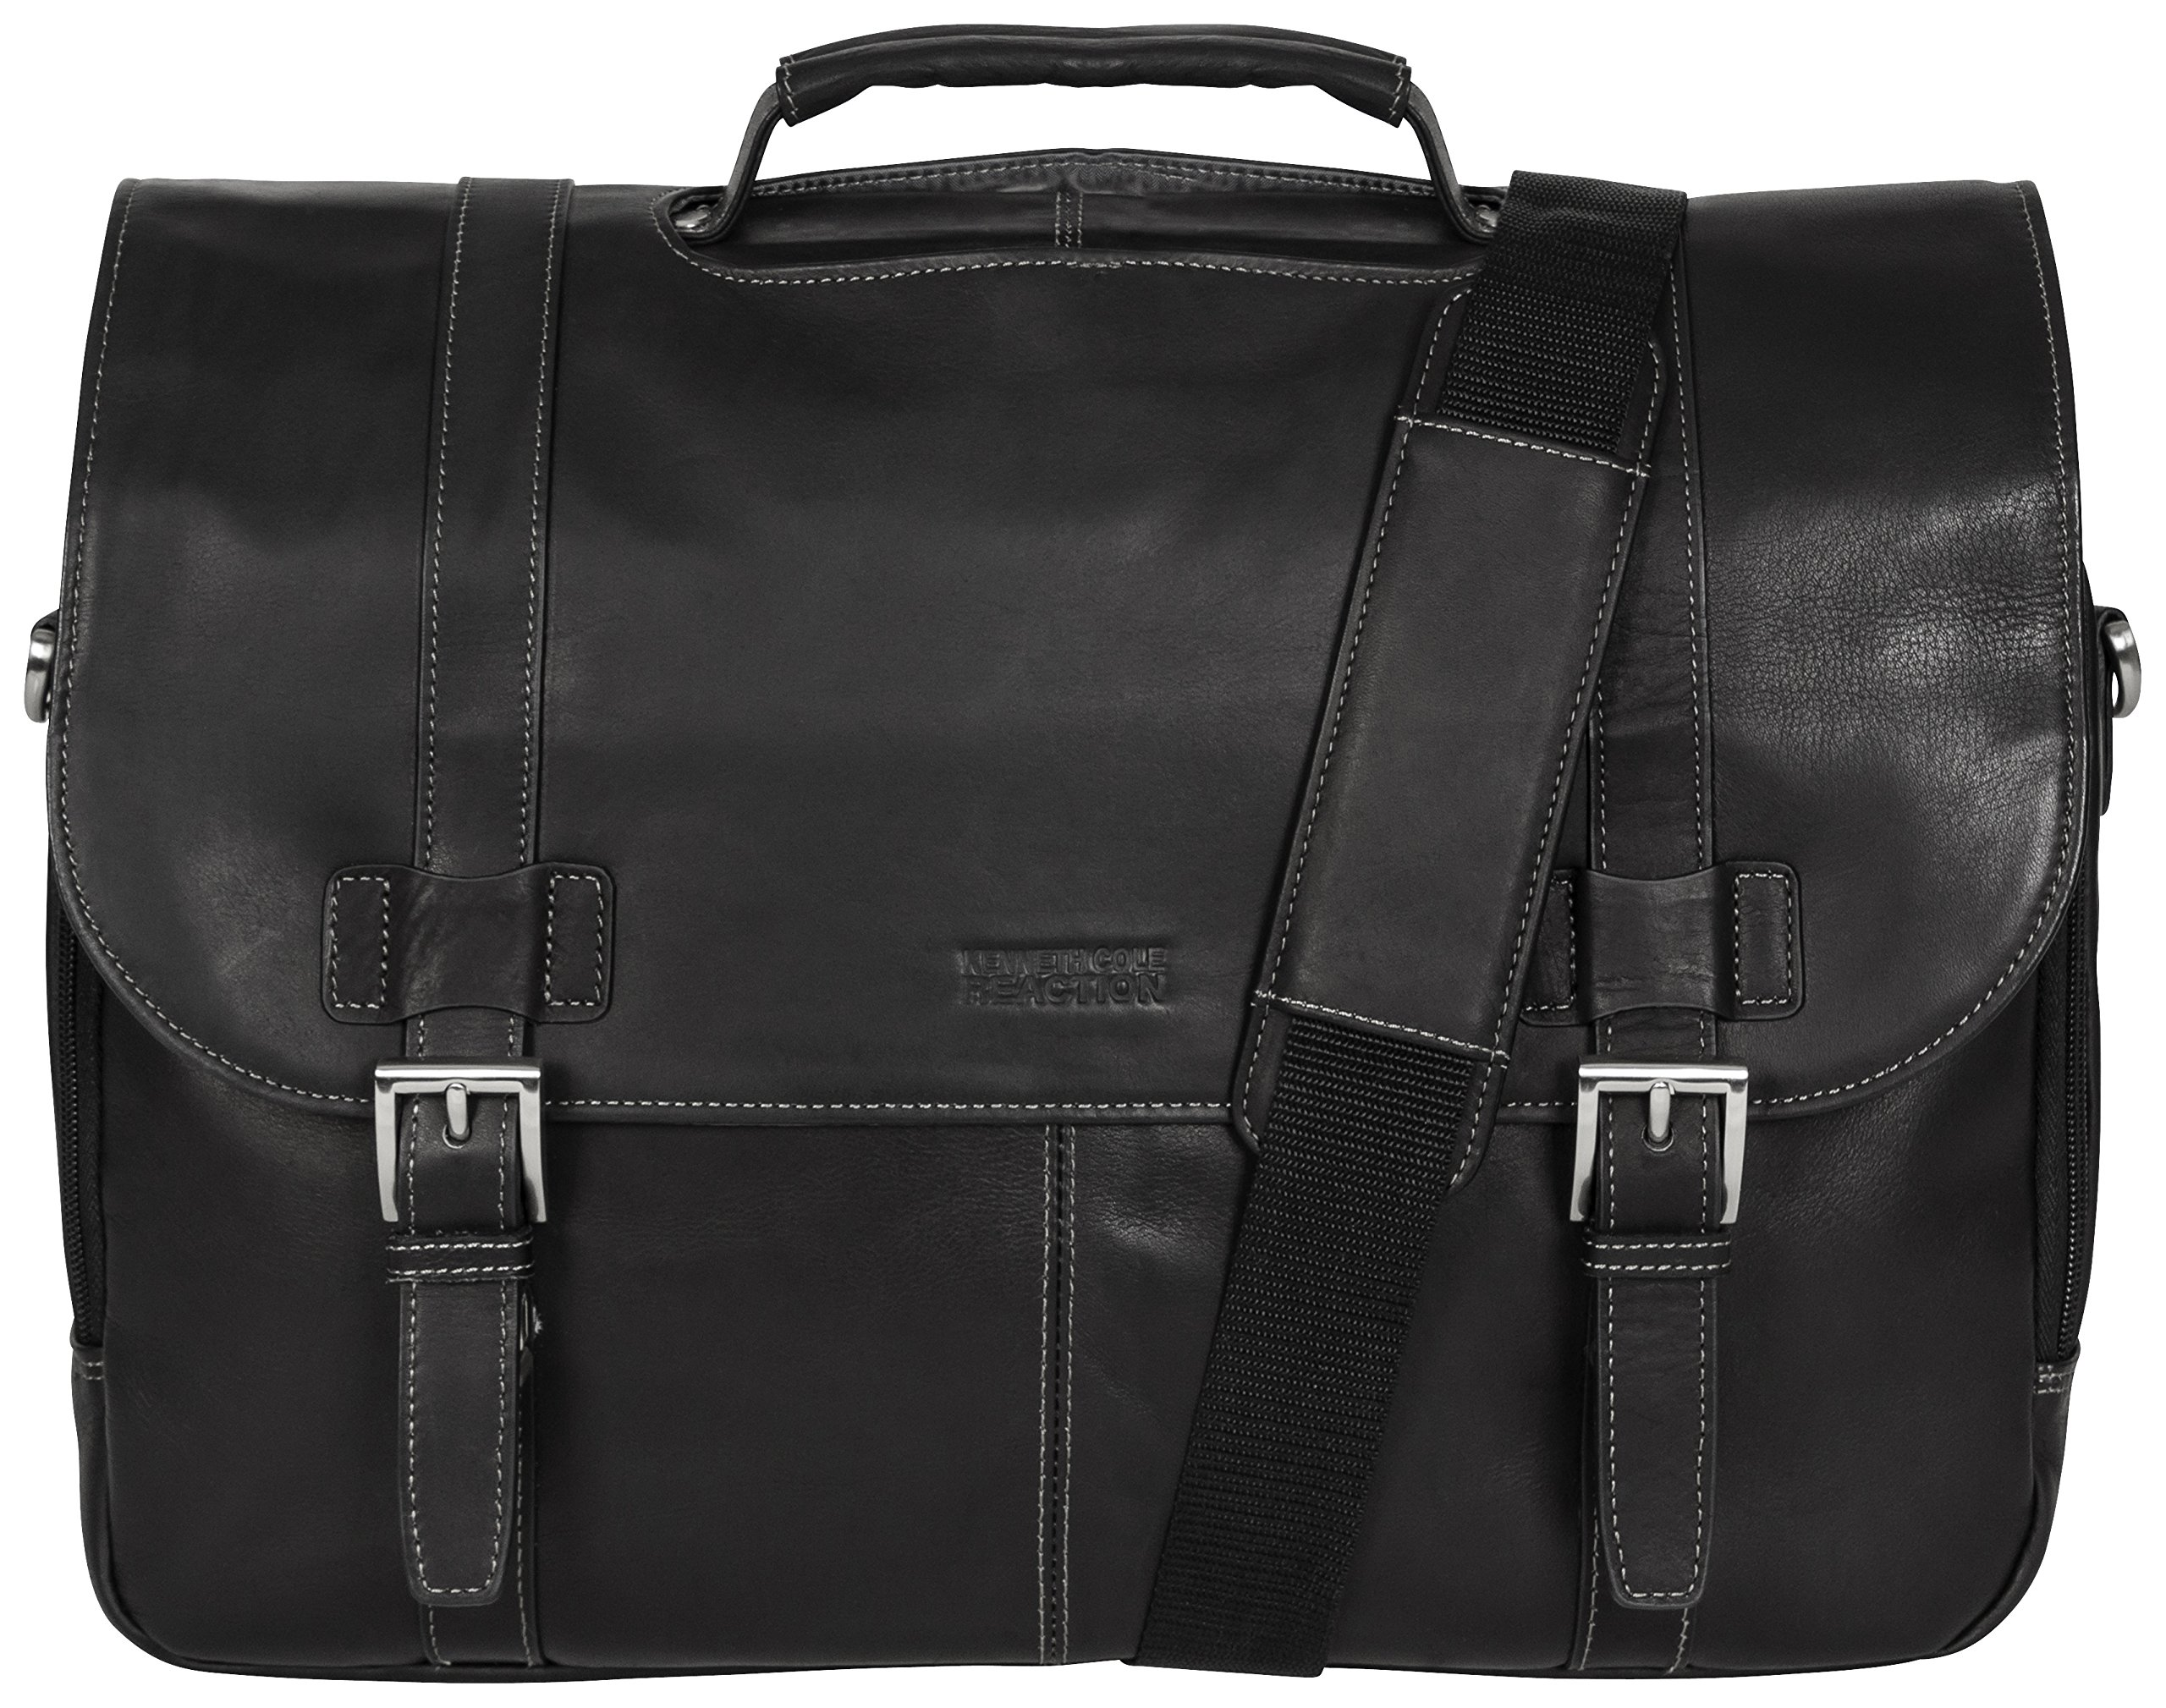 Kenneth Cole Reaction ''Show Business'' Colombian Leather Double Compartment Flapover Portfolio/Computer Case With Pull Through Handle/ Fits Most  15.4'' Laptops, Black, One Size by Kenneth Cole REACTION